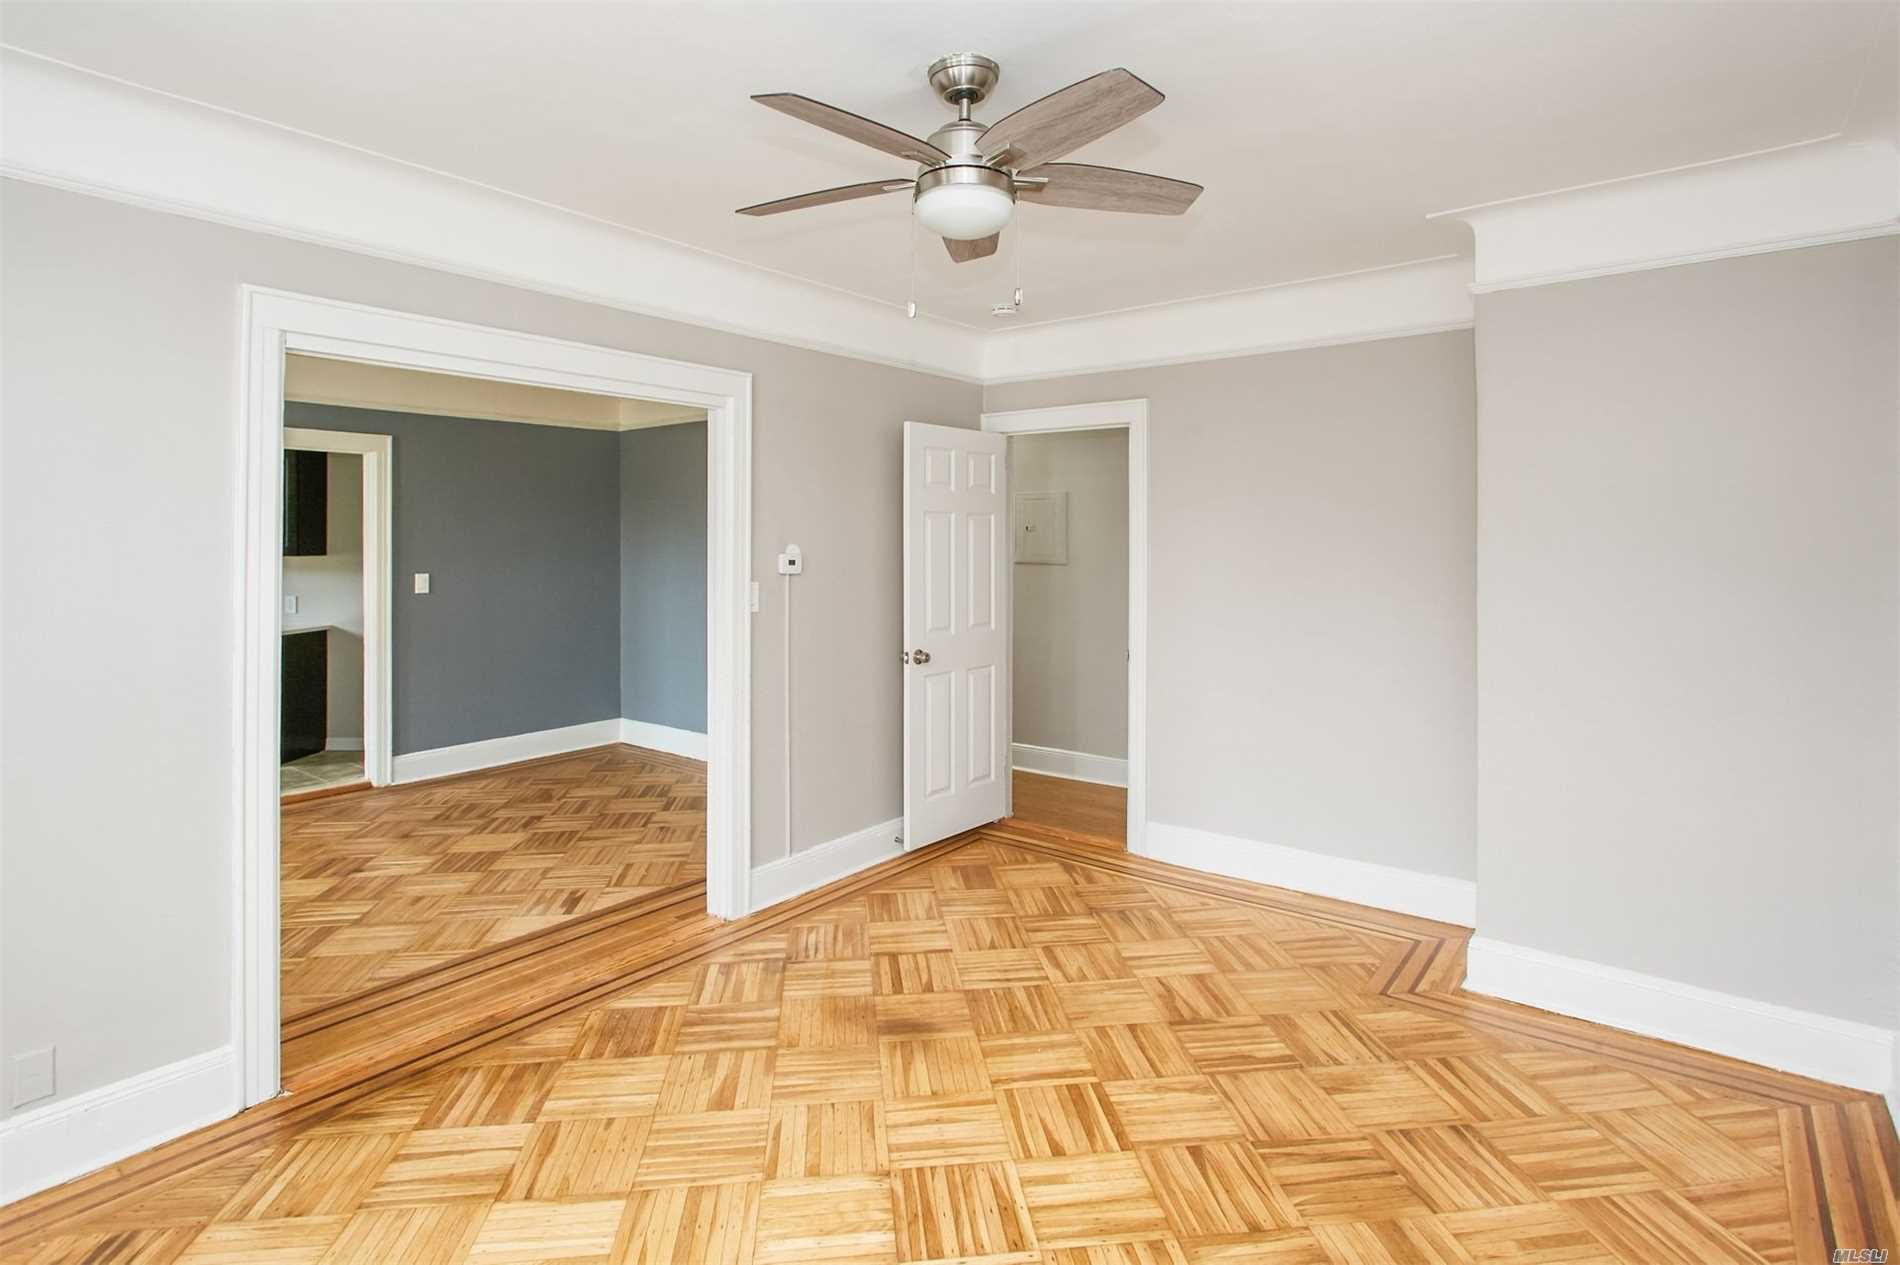 Flawlessly Renovated With New Kitchen, New Bathroom, Refinished Hard Wood Floors And All Fixtures. Spacious & Bright Corner Unit With 2 Large Bedrooms Or Bedroom & Lr. Heat & Water Included, Tenant To Pay Electric & Cooking Gas. Close To All & Half Block To The Beautiful Forest Park.